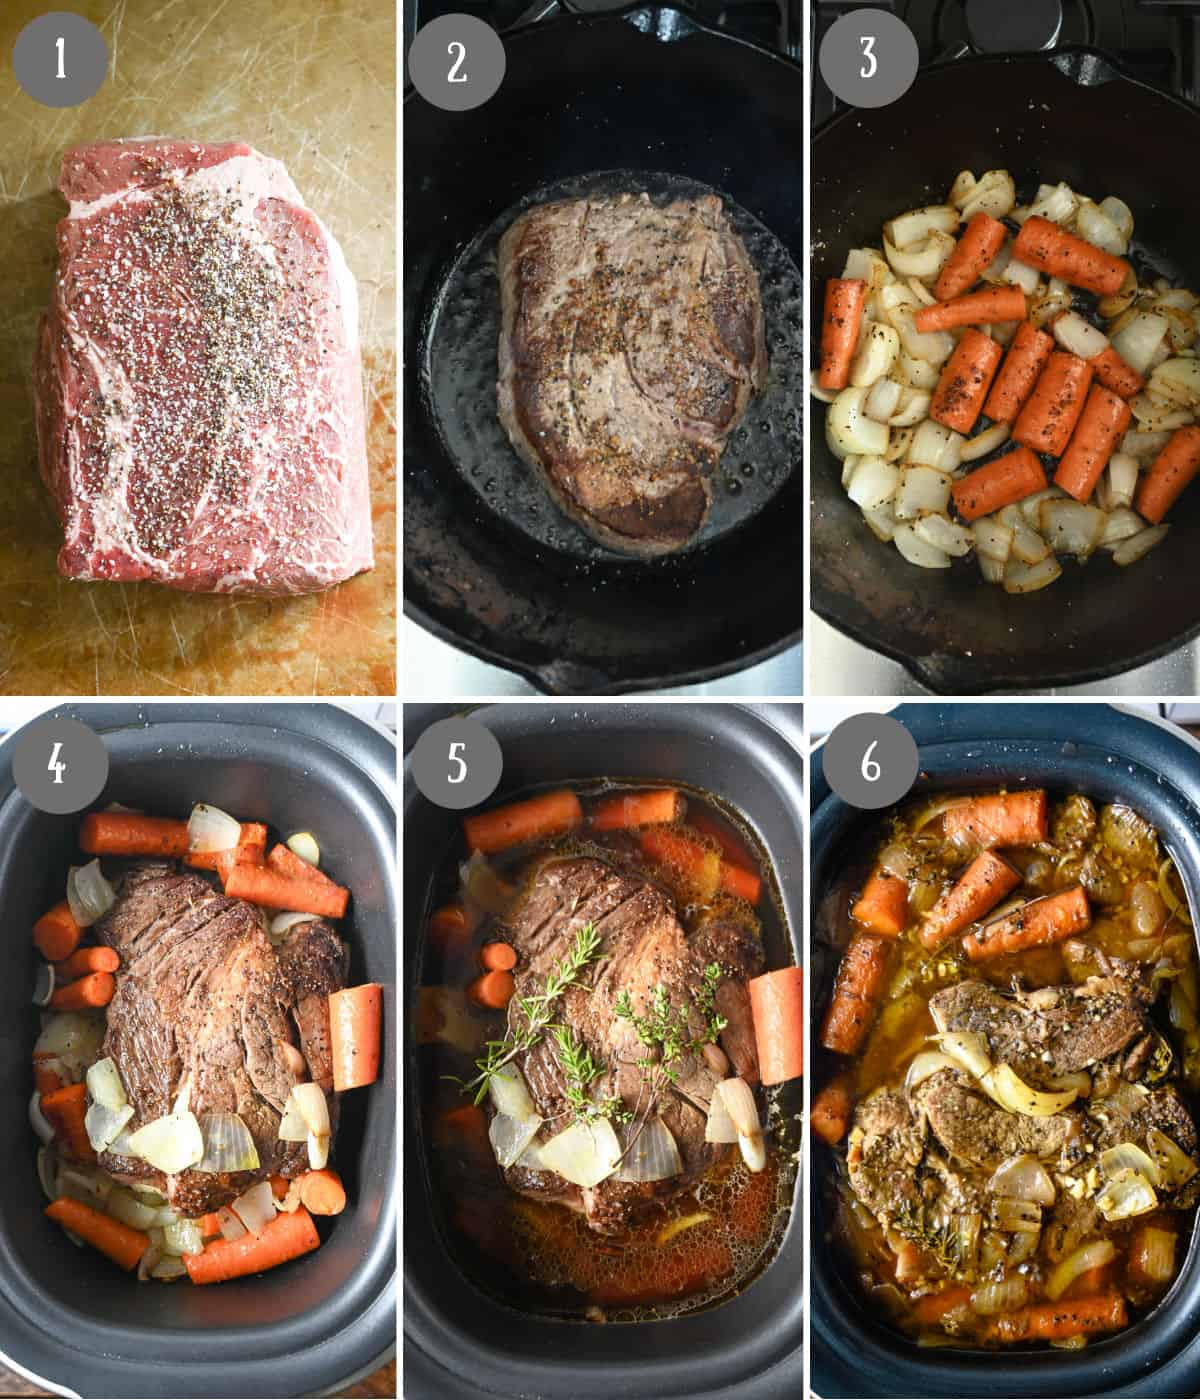 Six proces photos. First one, a raw chuck roast with salt and pepper. Secone one, roast being seared in a hot skillet. Third one, carrots and onions being browned in a hot skillet. Fourth one, browned roast and veggies placed in the slow cooker. Fifth one, beef broth poured on top. Sixth one, pot roast all done cookling in the slow cooker.